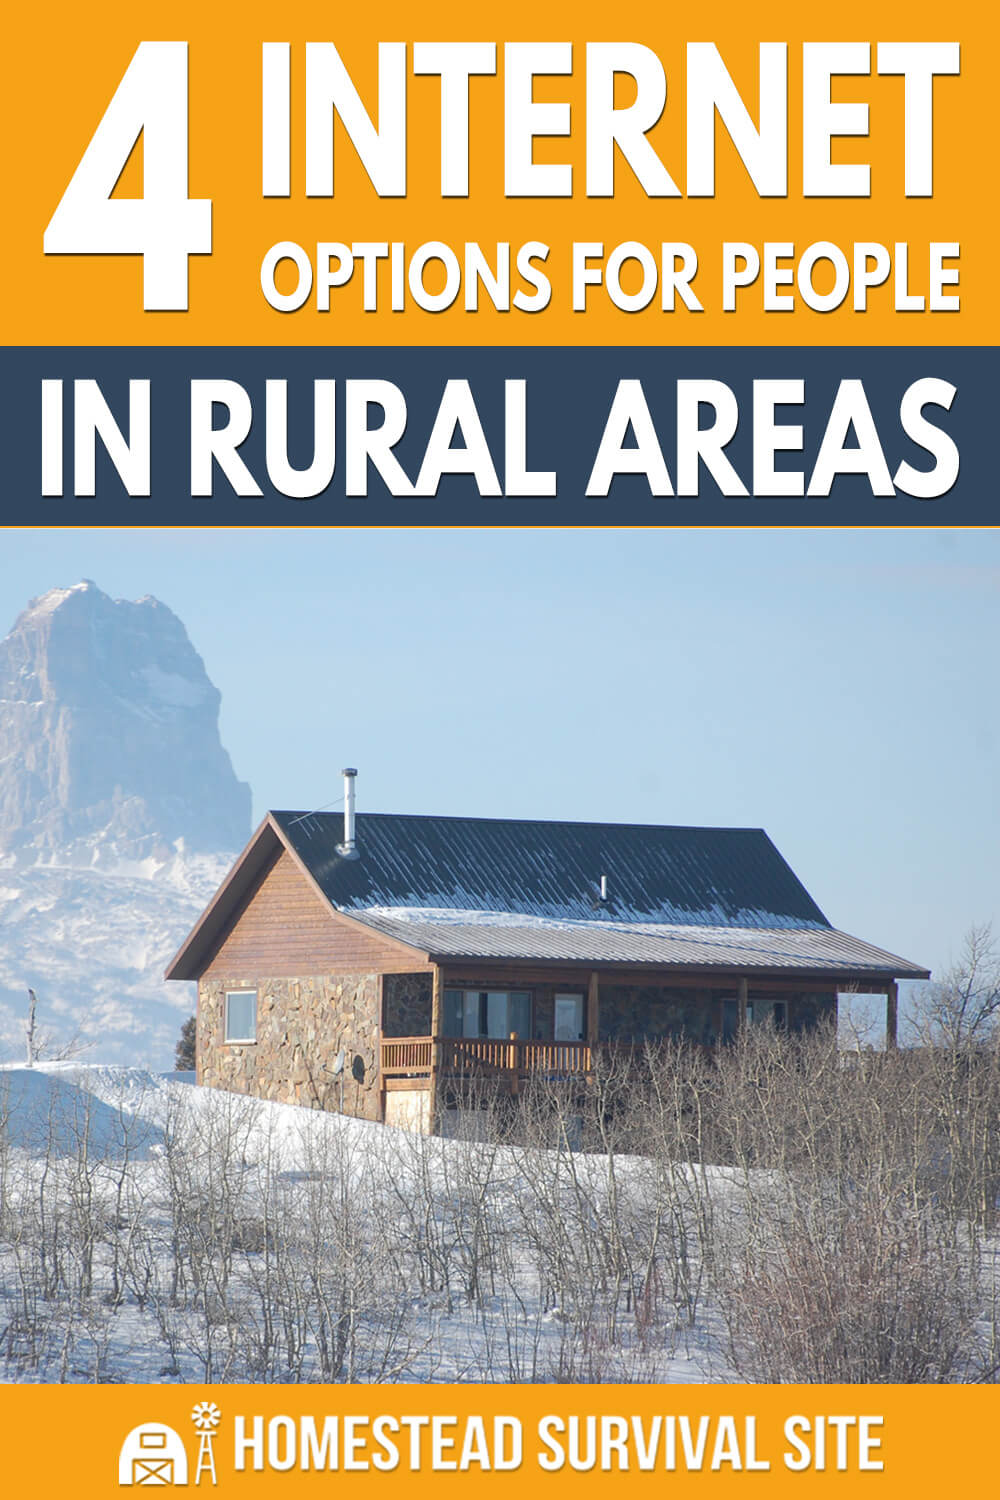 4 Internet Options for People in Rural Areas